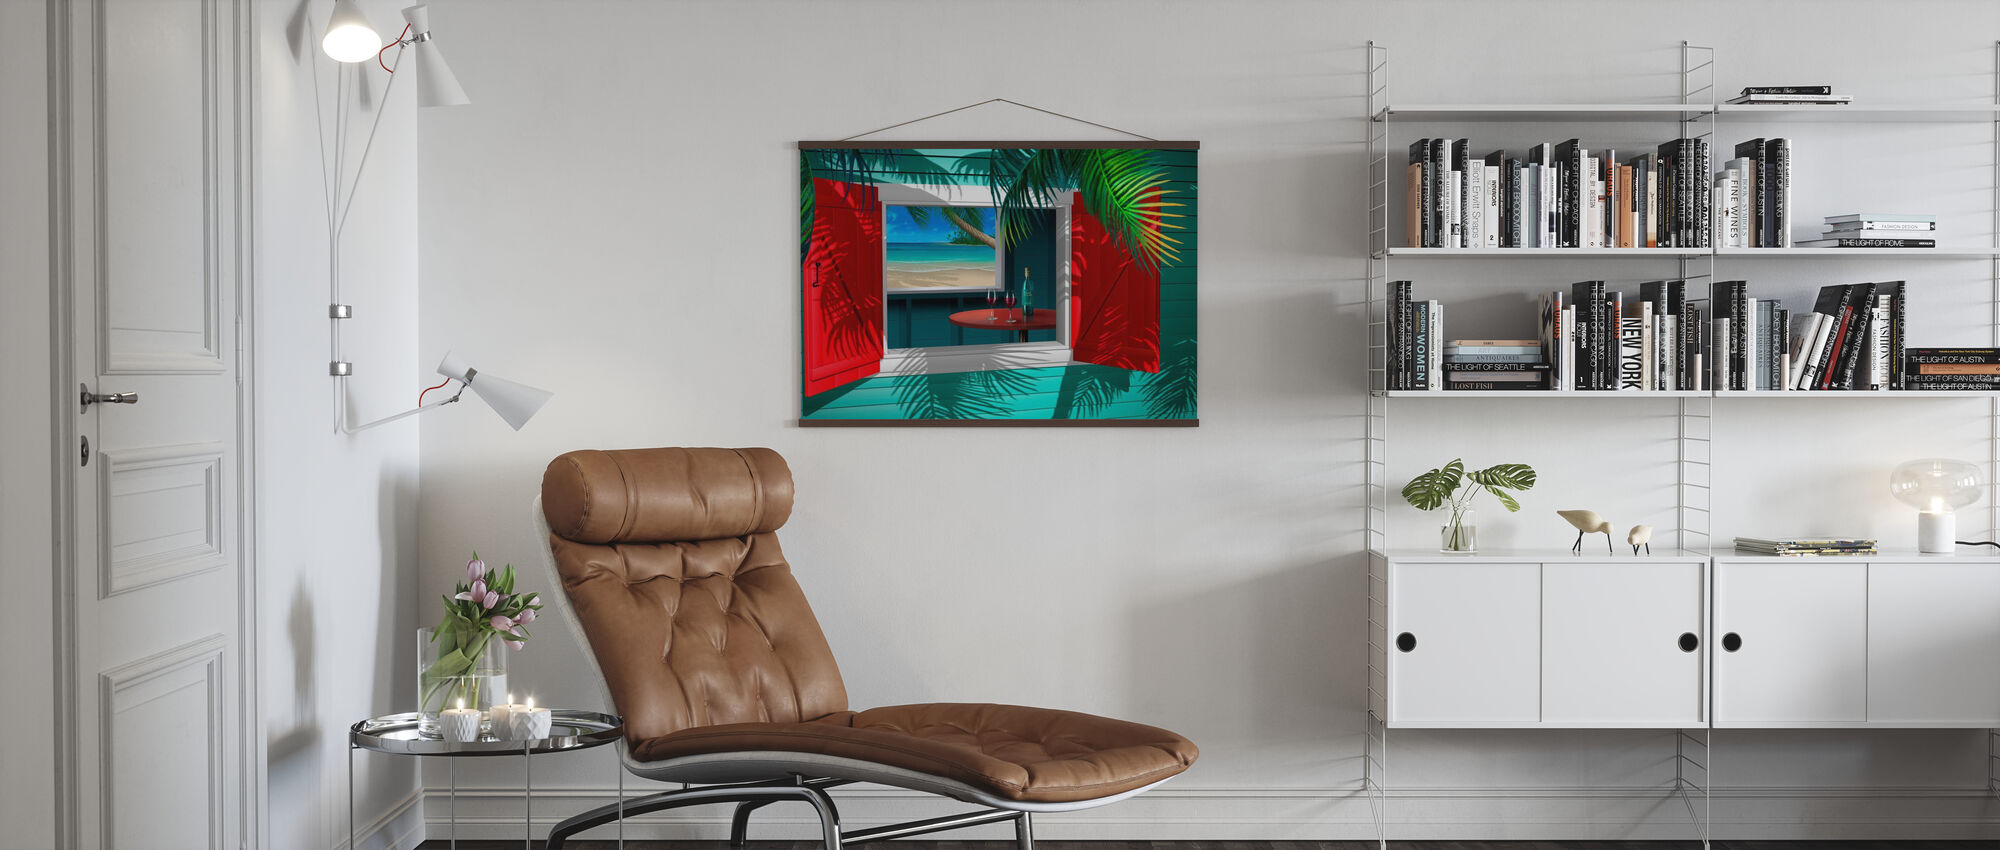 View of a View - Poster - Living Room